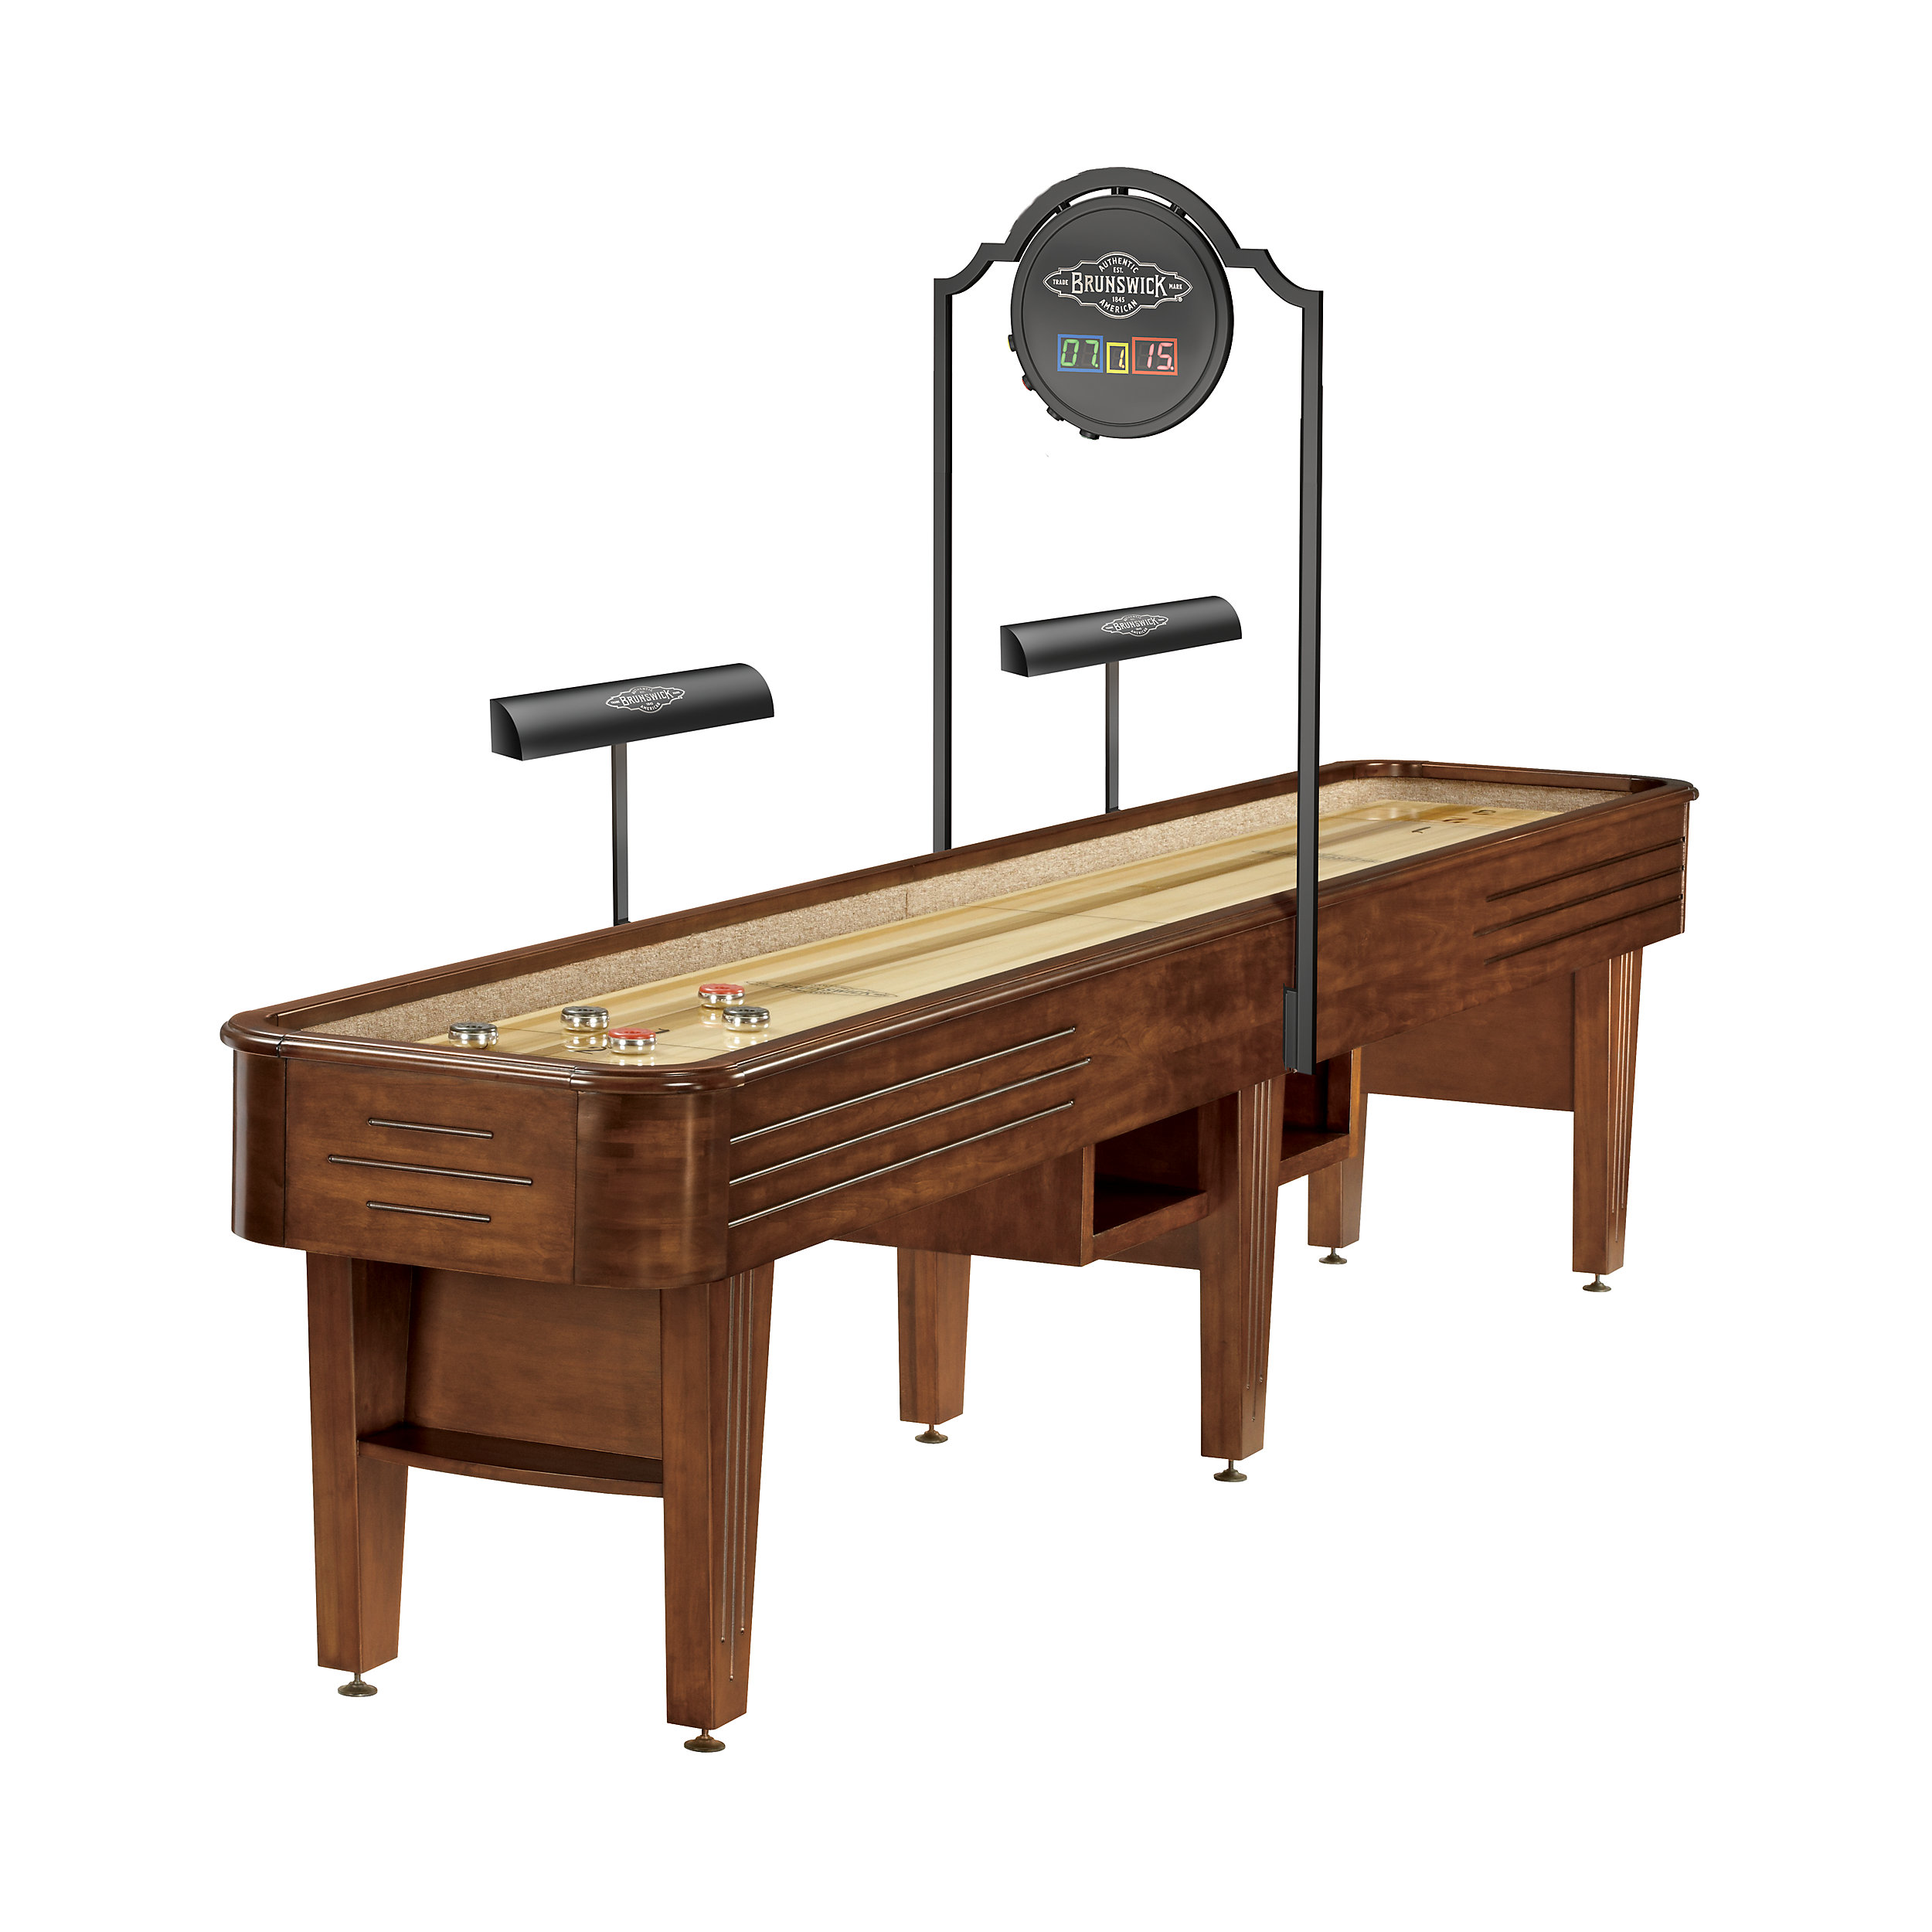 d arcade en your products show ft best shuffleboard table md sports